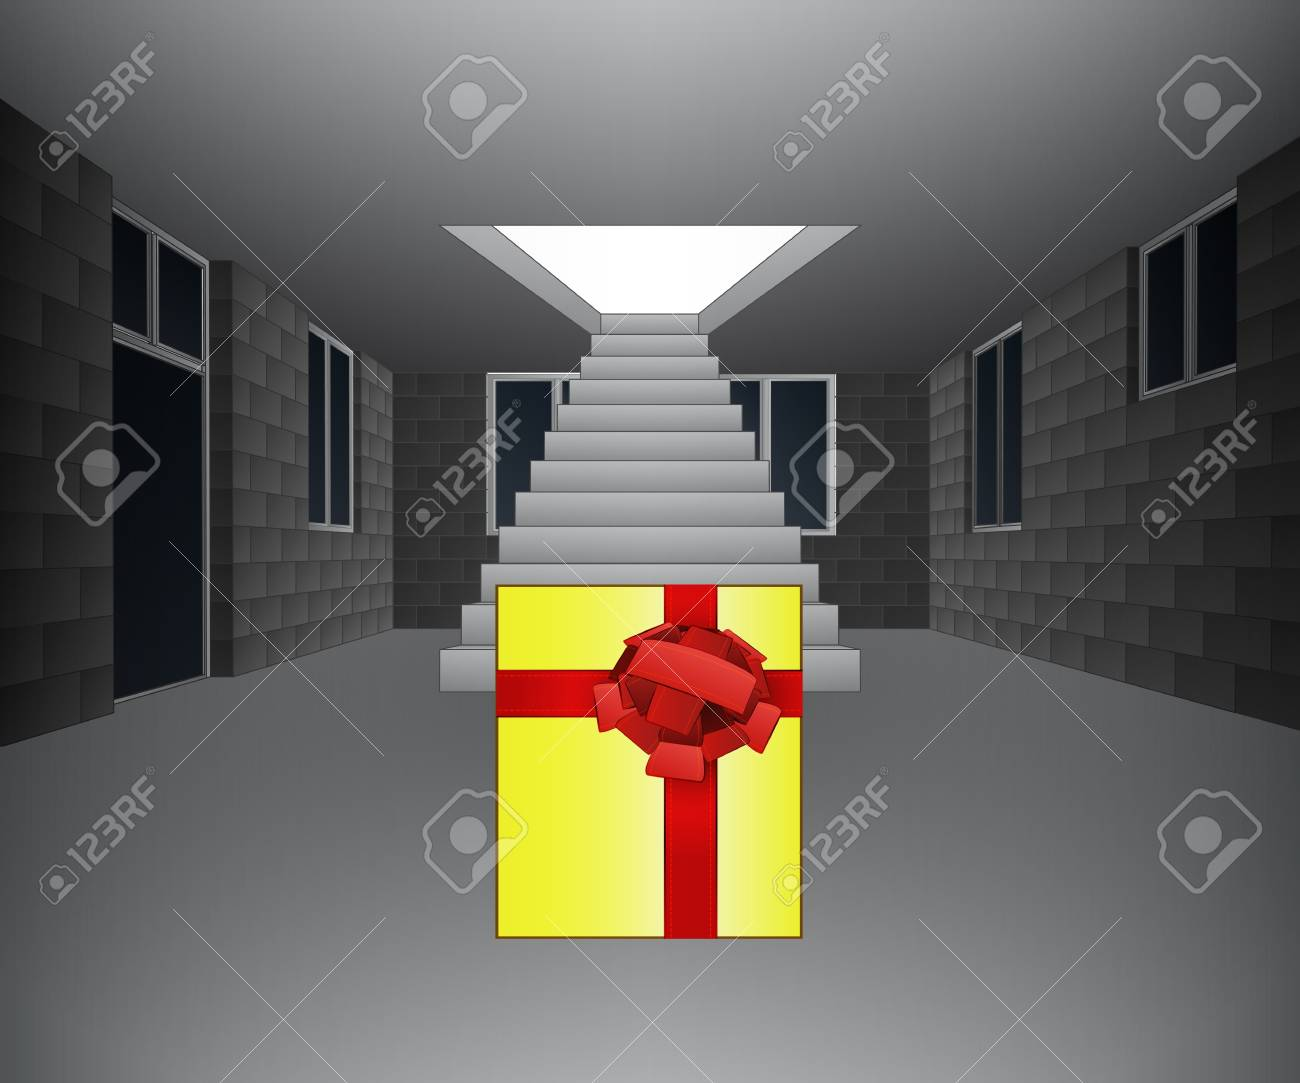 house interior with gift in front of staircase illustration Stock Vector - 21659673